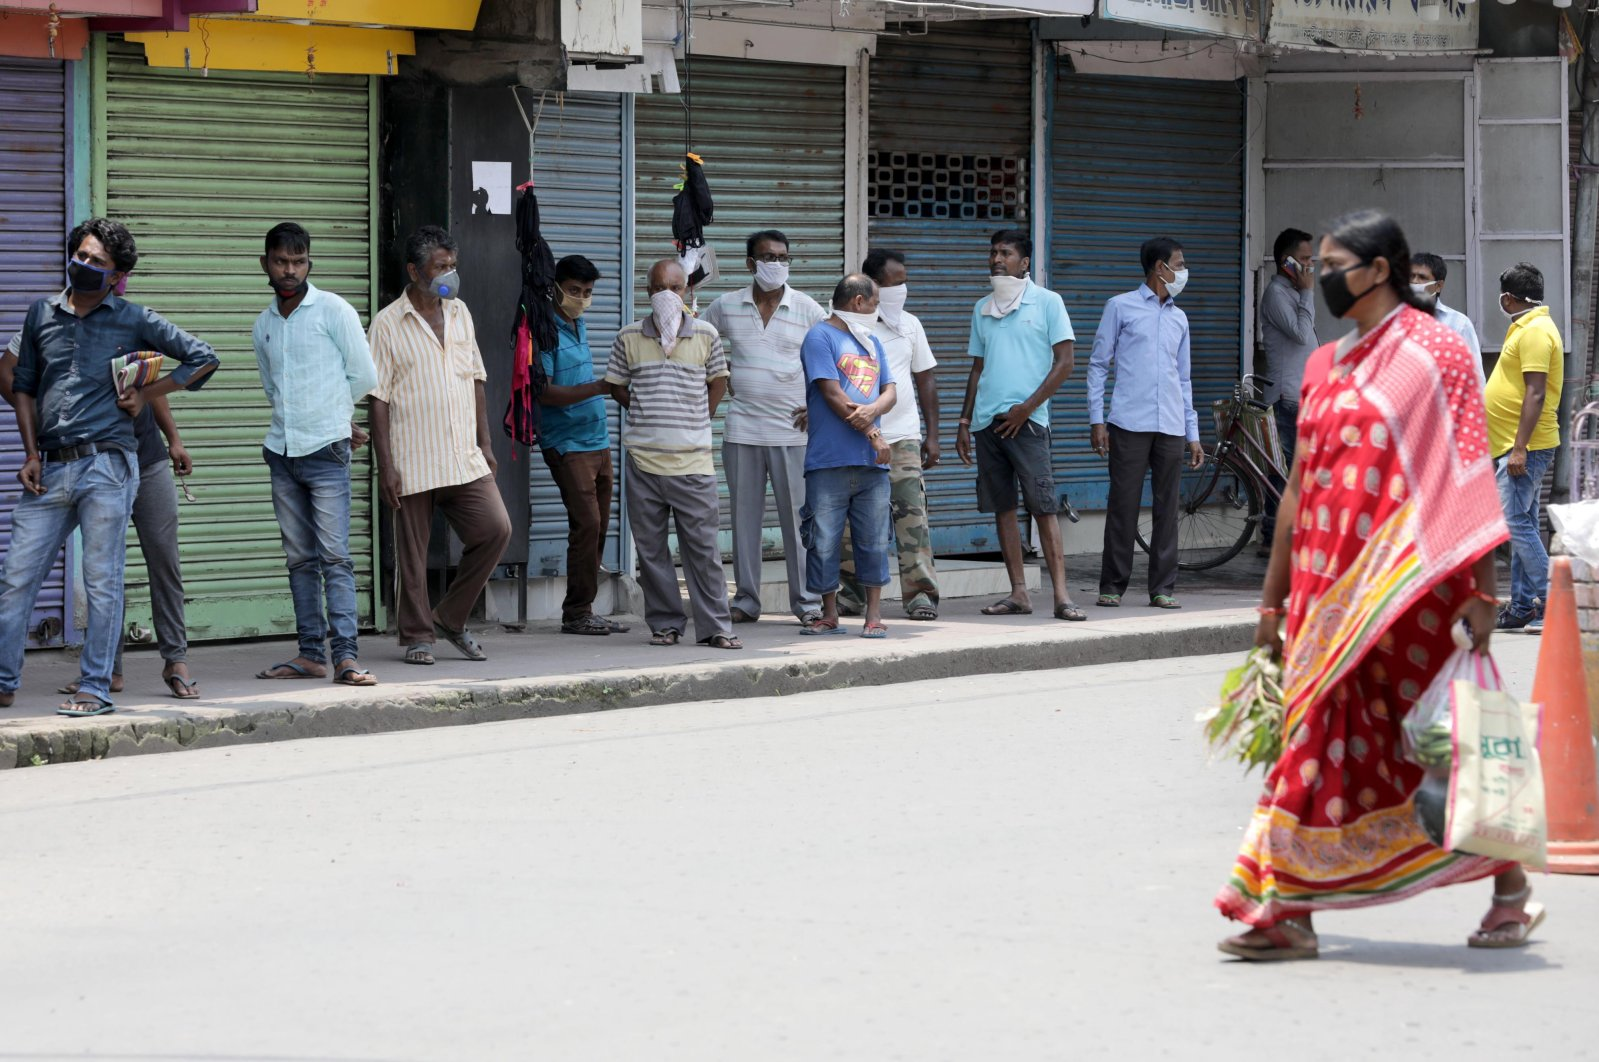 People wearing face masks queue up without keeping social distance outside a liquor store amid the ongoing coronavirus lockdown in Kolkata, India, May 5, 2020. (EPA Photo)